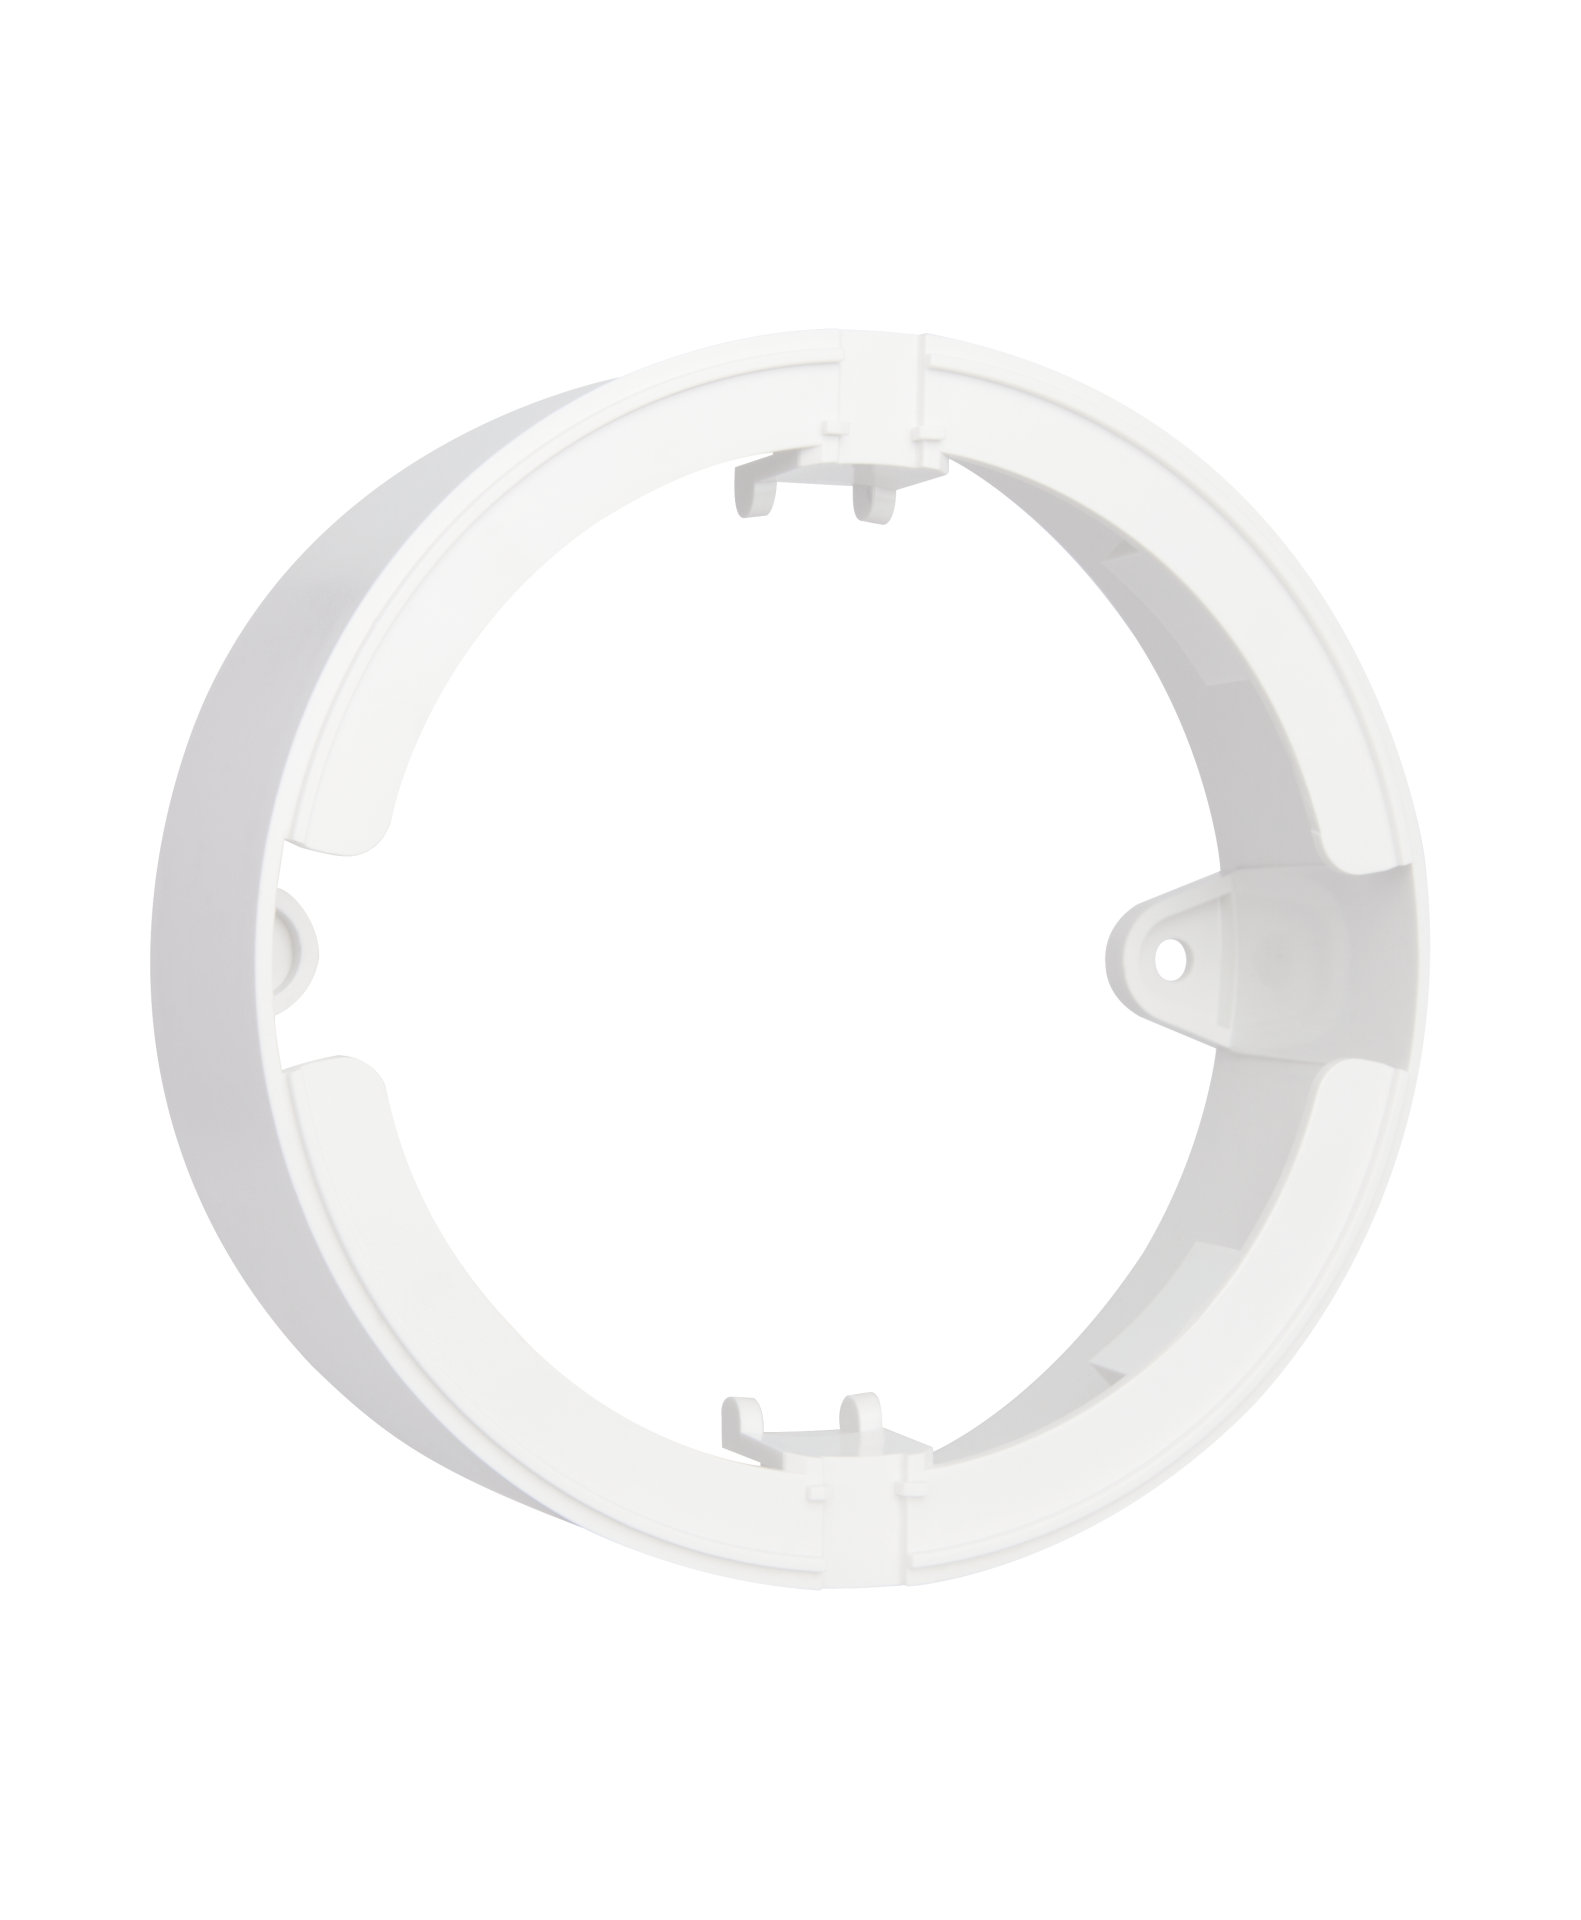 EMERGENCY DOWNLIGHT DN120 MOUNT KIT